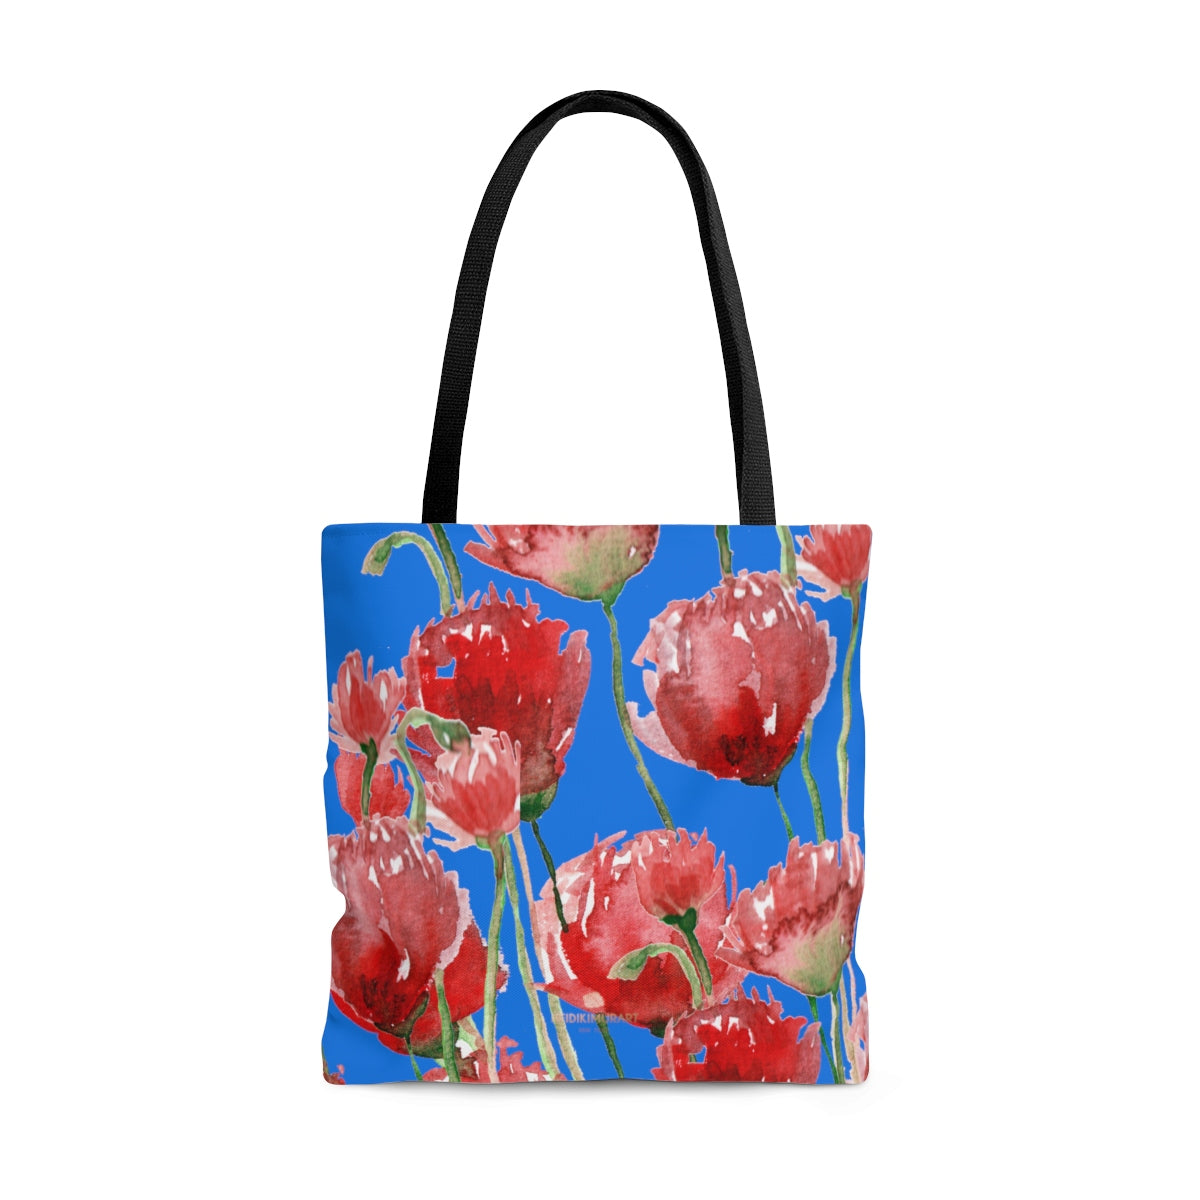 Sky Blue Pacific Northwest Red Tulip Flower Floral Designer Tote Bag - Made in USA-Tote Bag-Large-Heidi Kimura Art LLC